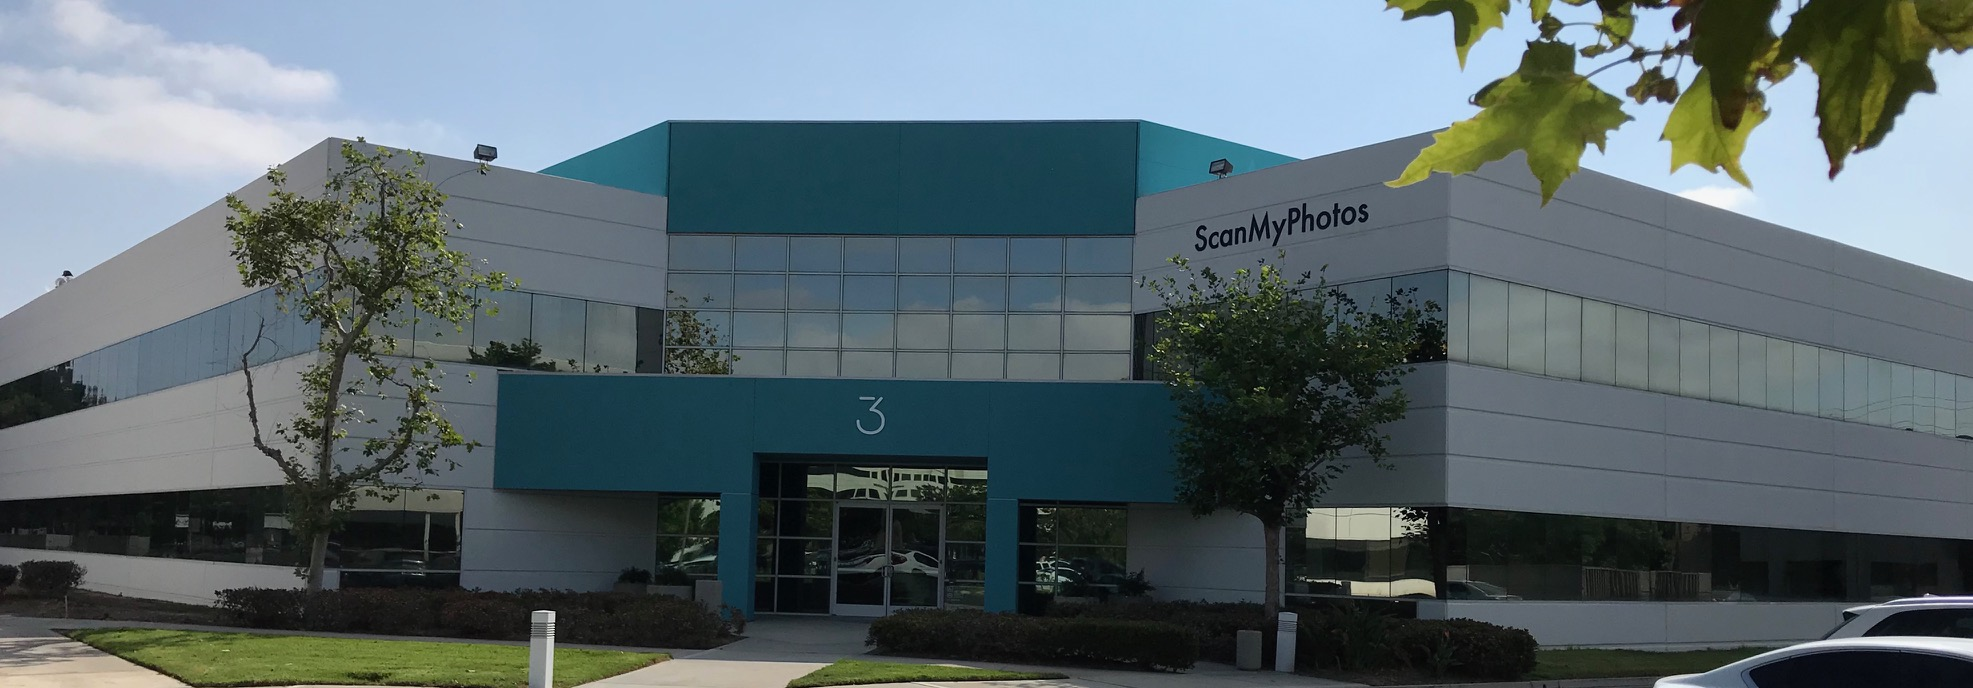 ScanMyPhotos.com Corporate Headquarters in Irvine, CA